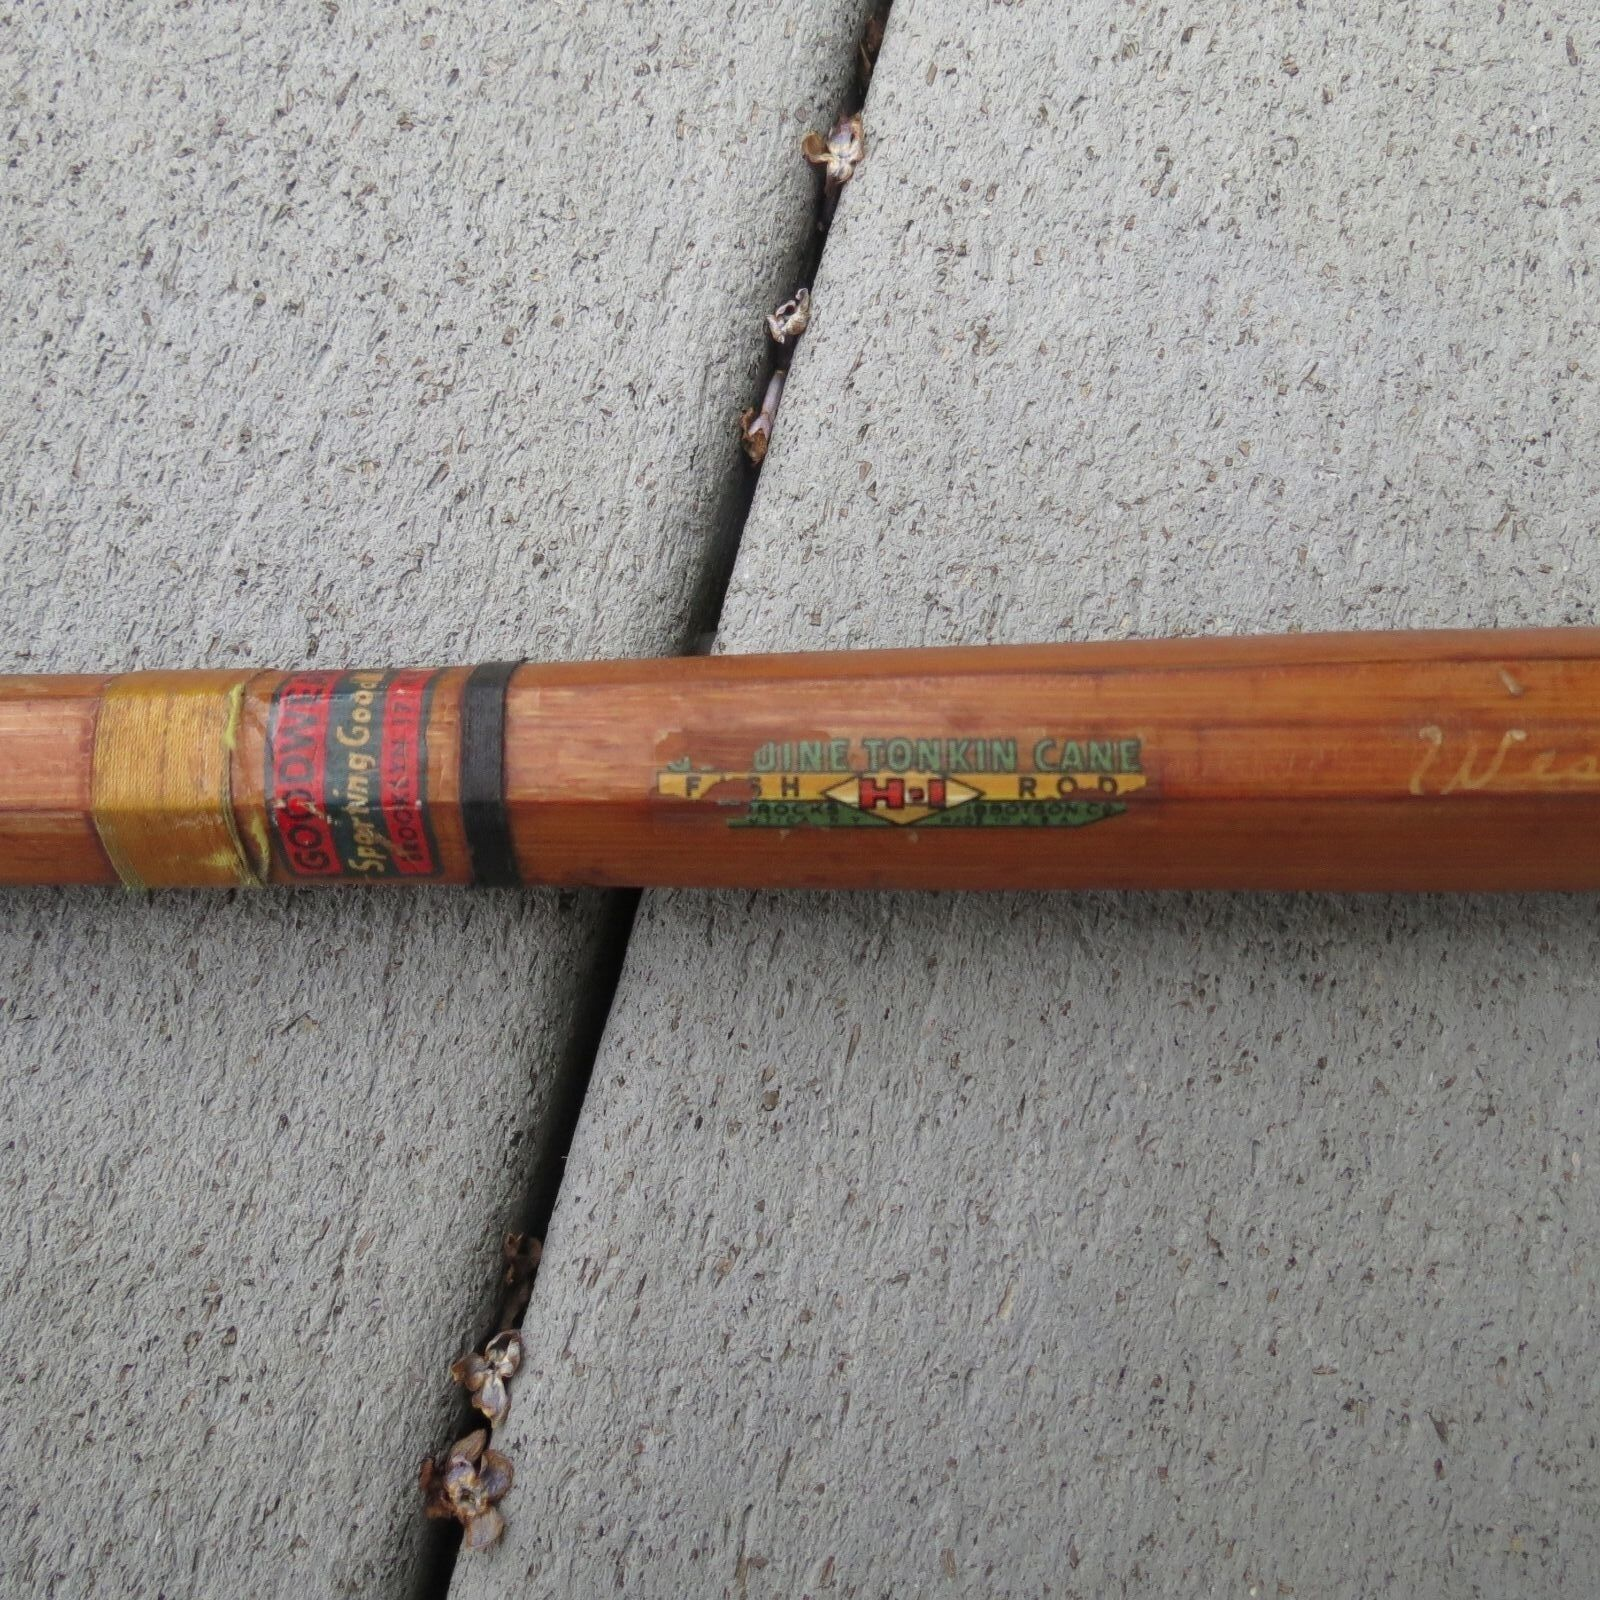 Vintage Goodwear Sporting Goods Co. HI Bamboo Fishing Rod West Point (L)